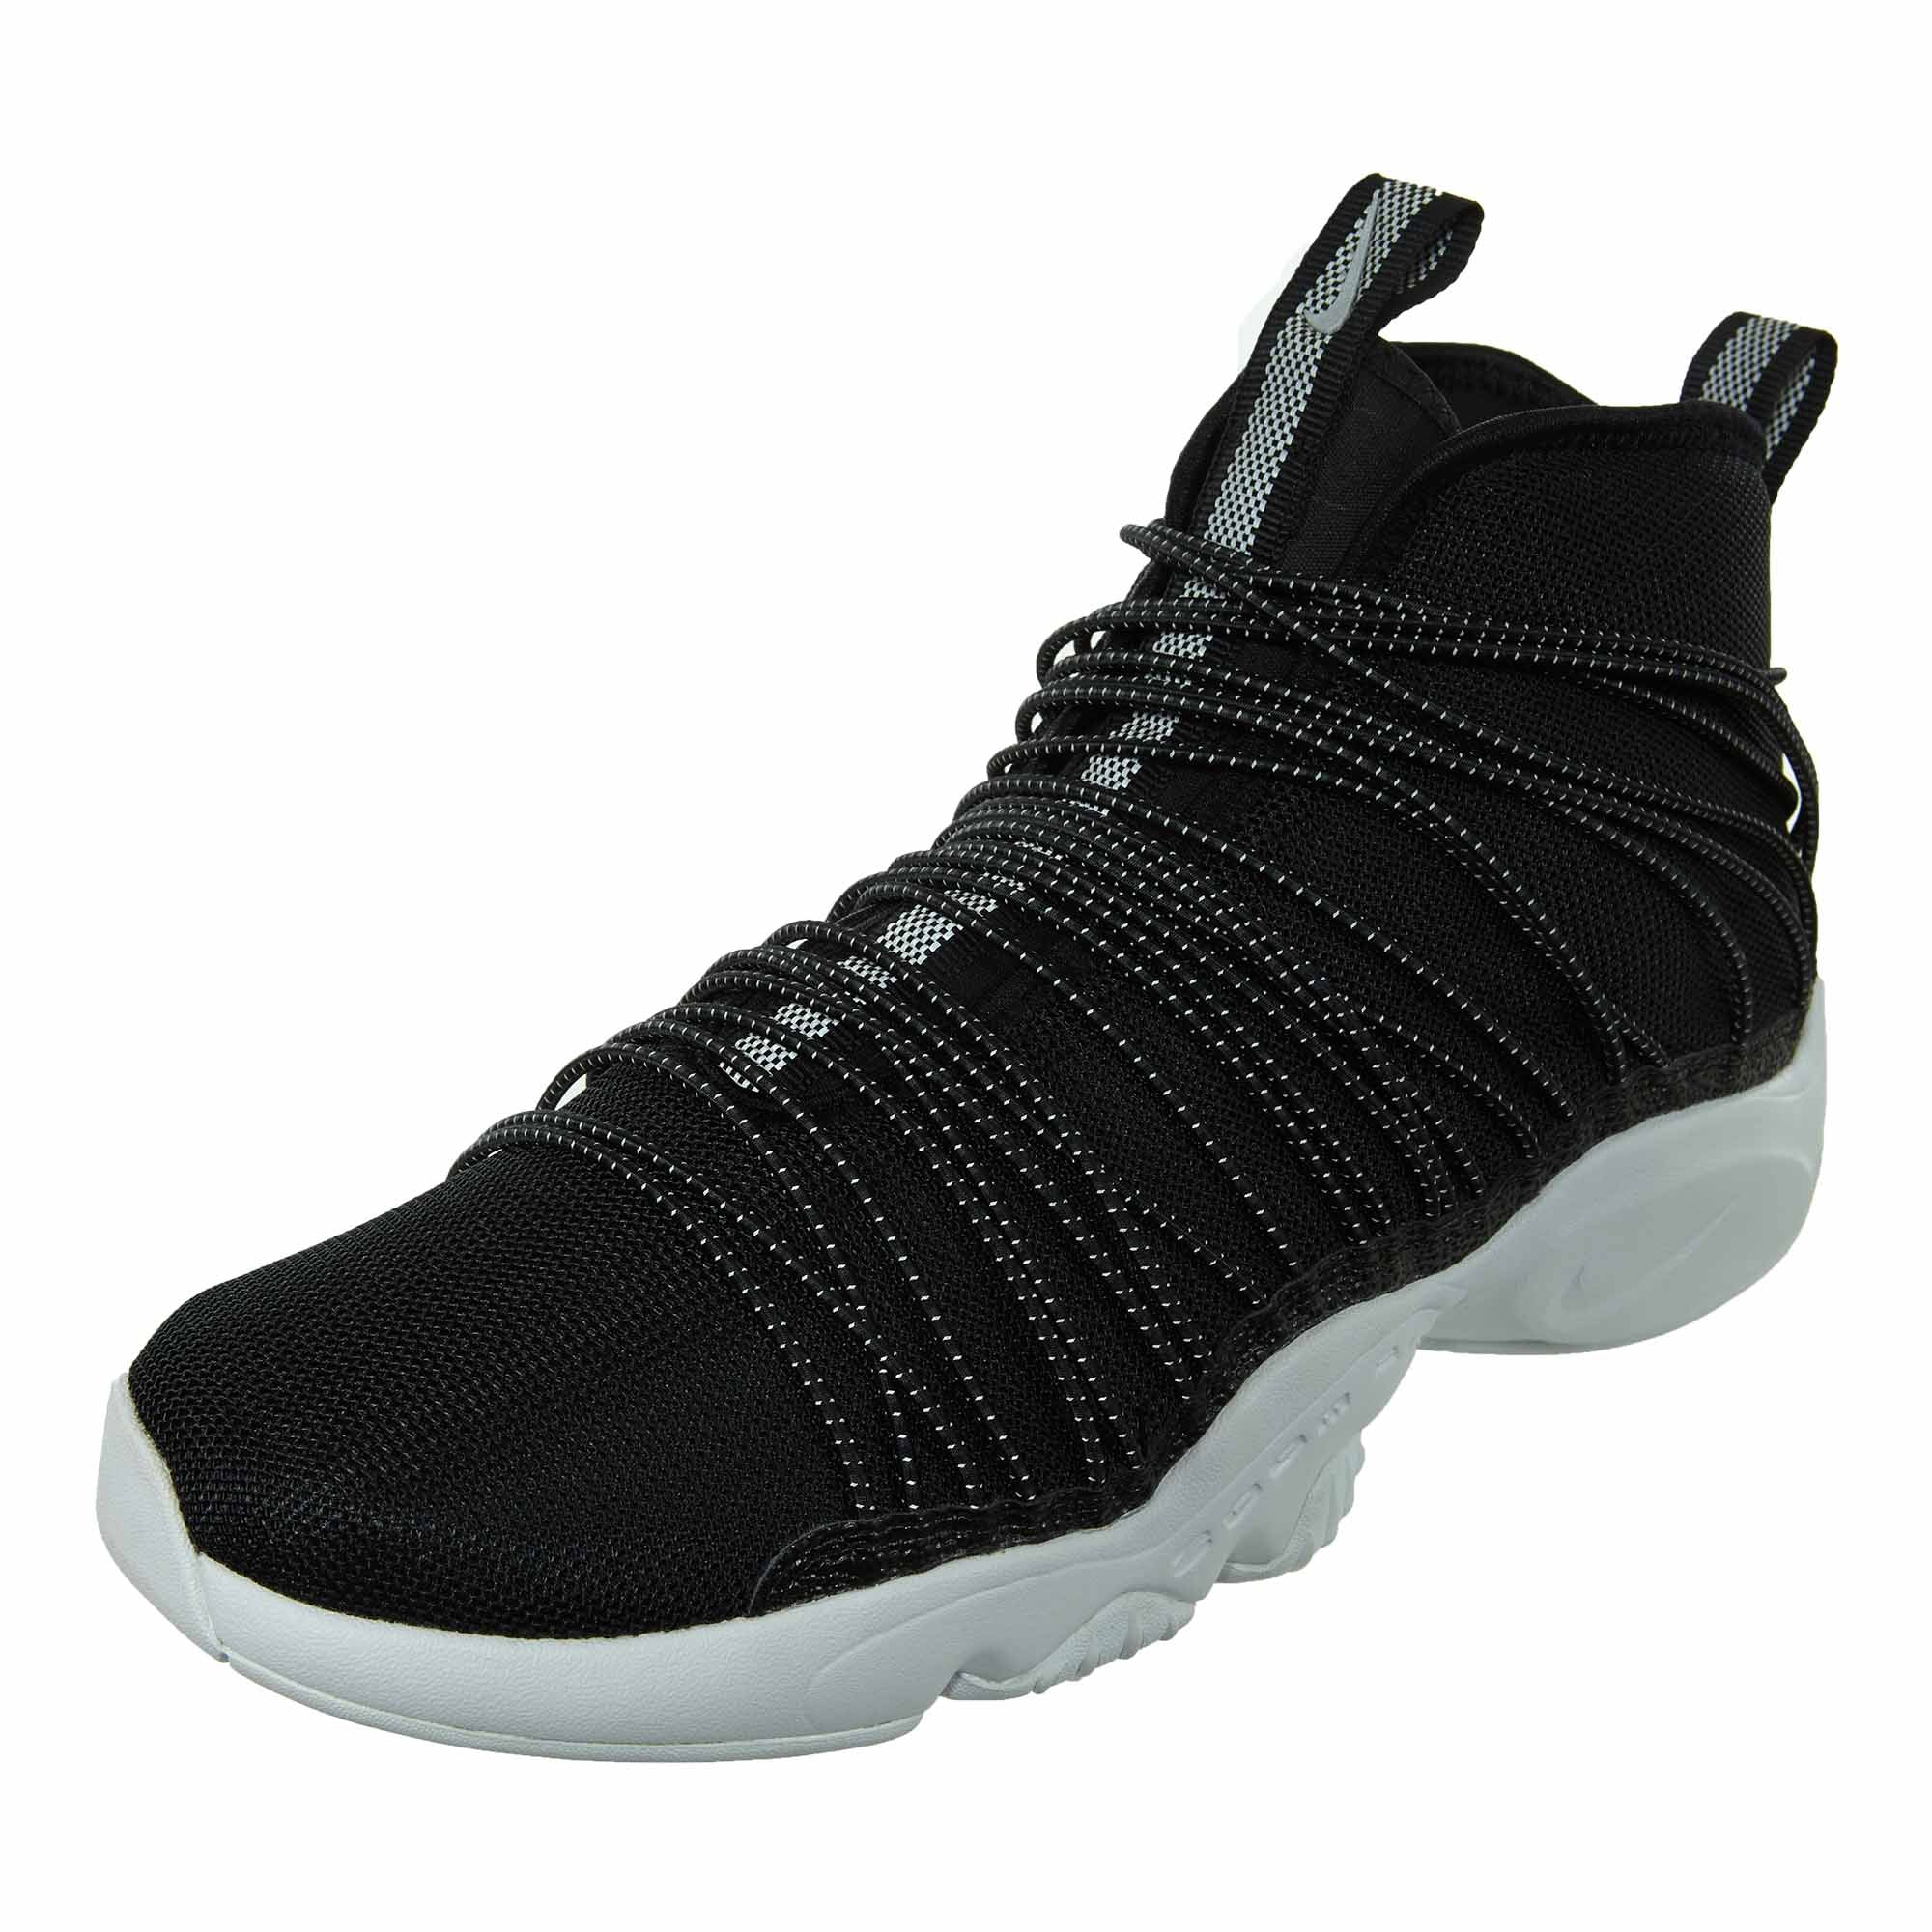 3f42b5959610 ... authentic nike zoom cabos mens style 845058 sneaker experts released  2019 d2dc9 44cd2 7f17c eddad